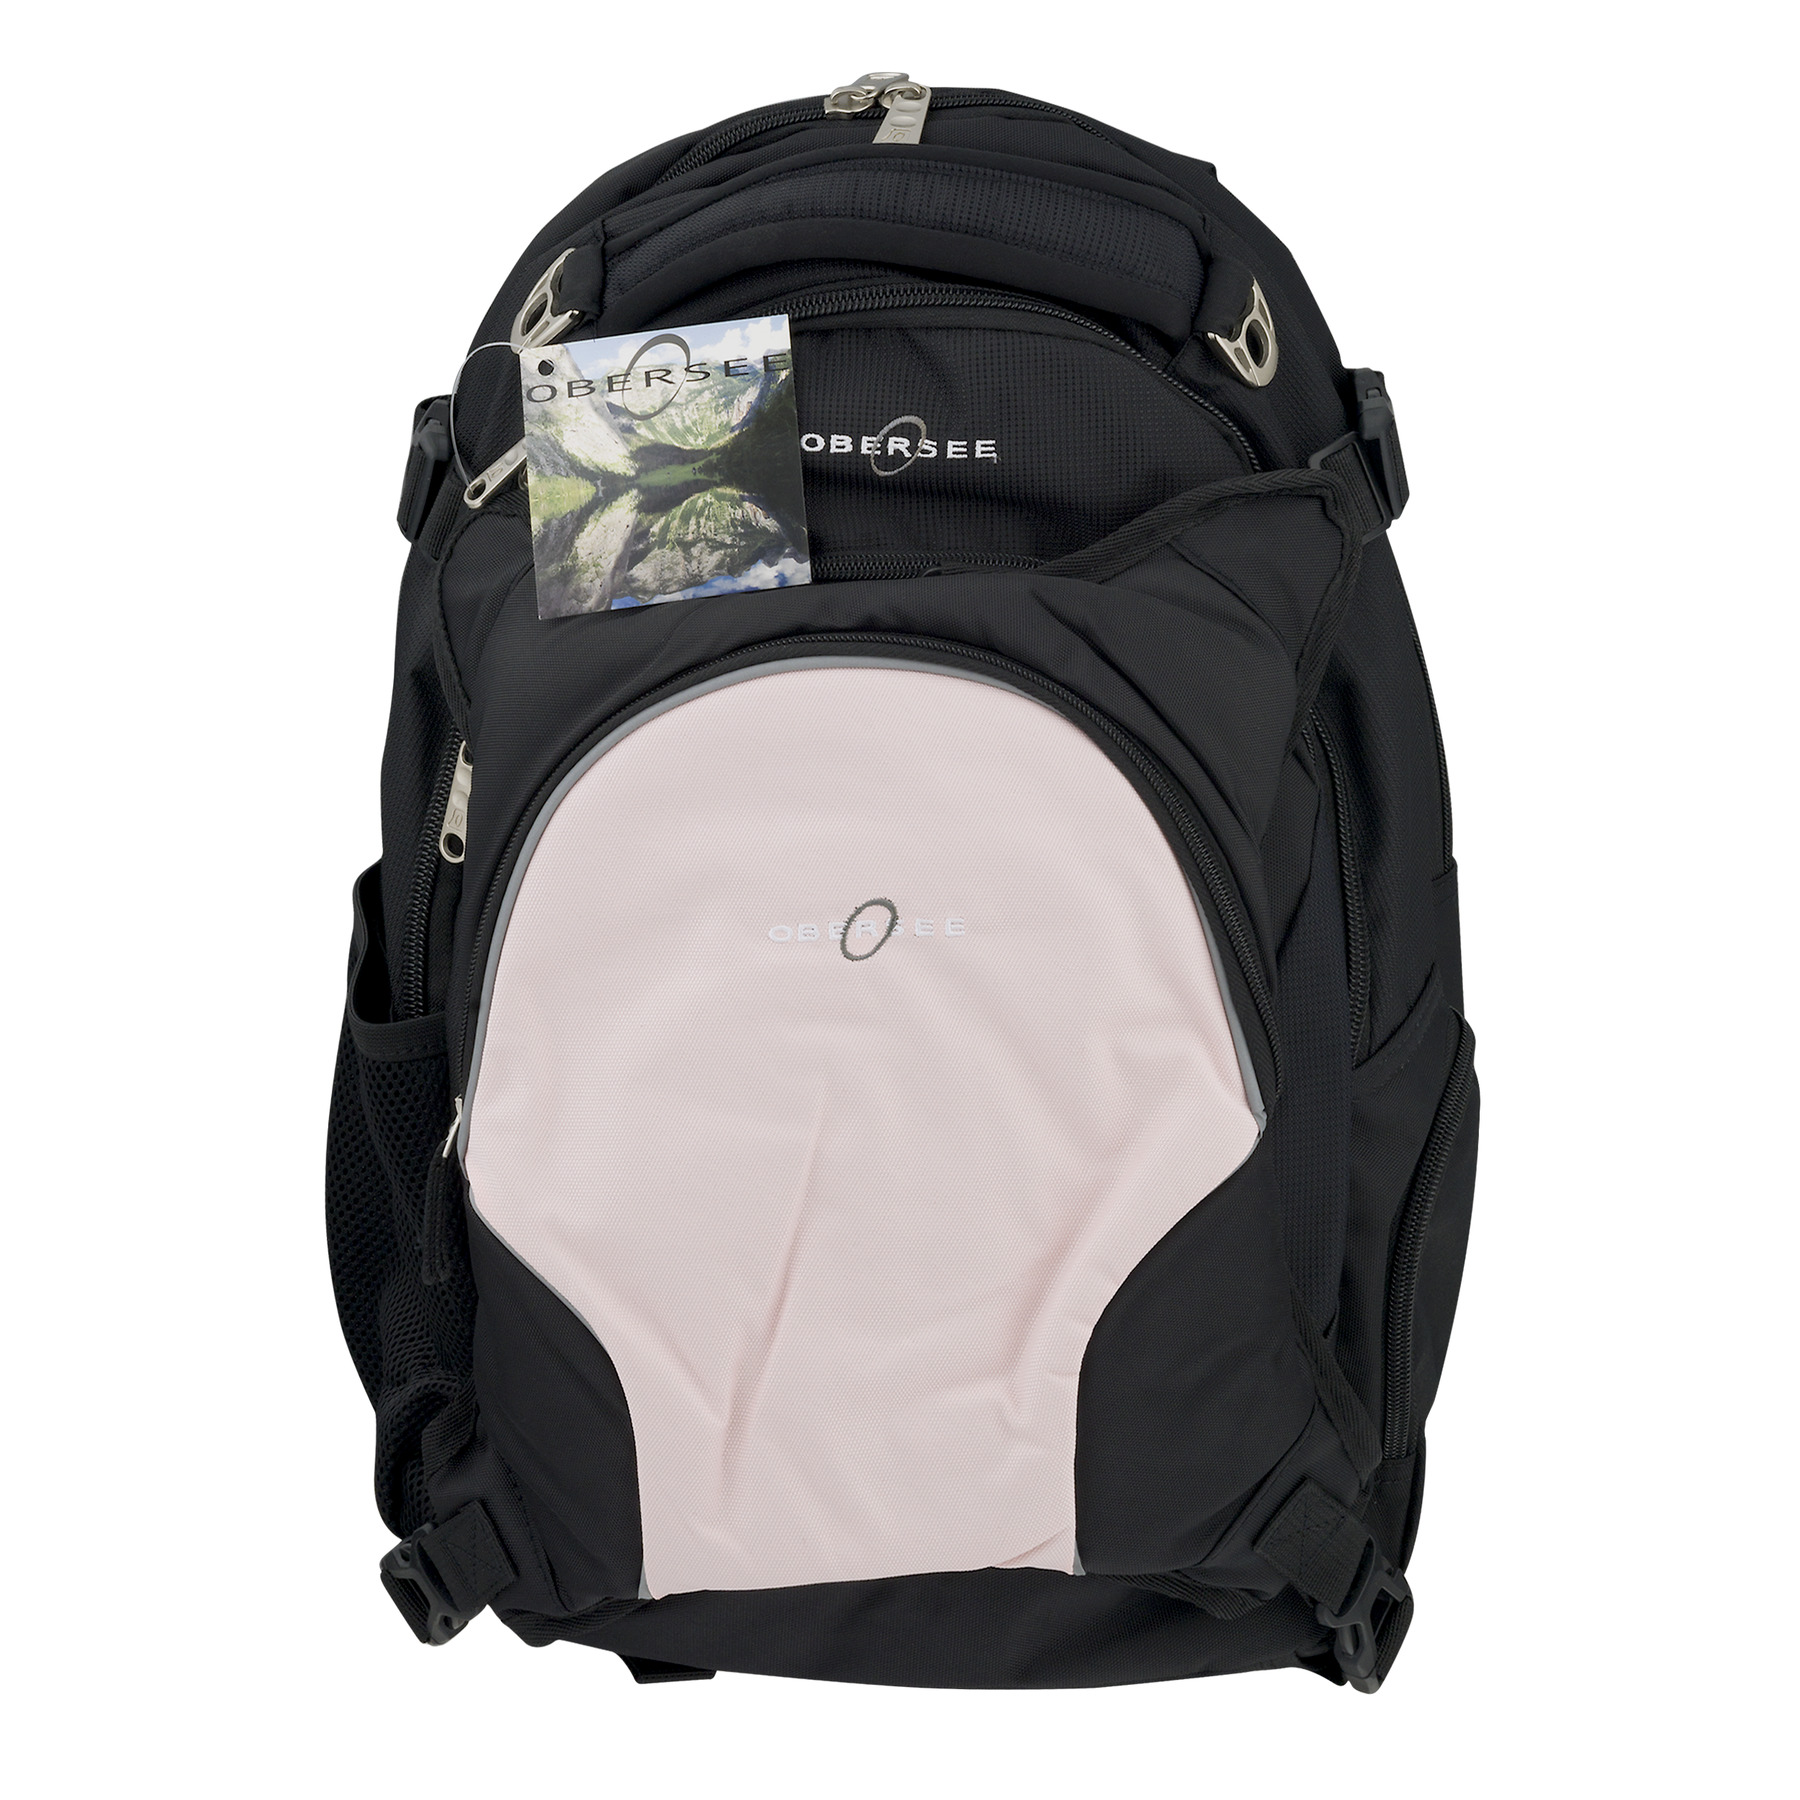 Obersee Oslo Diaper Bag Backpack With Cooler Black/Bubble Gum, 5.0 CT